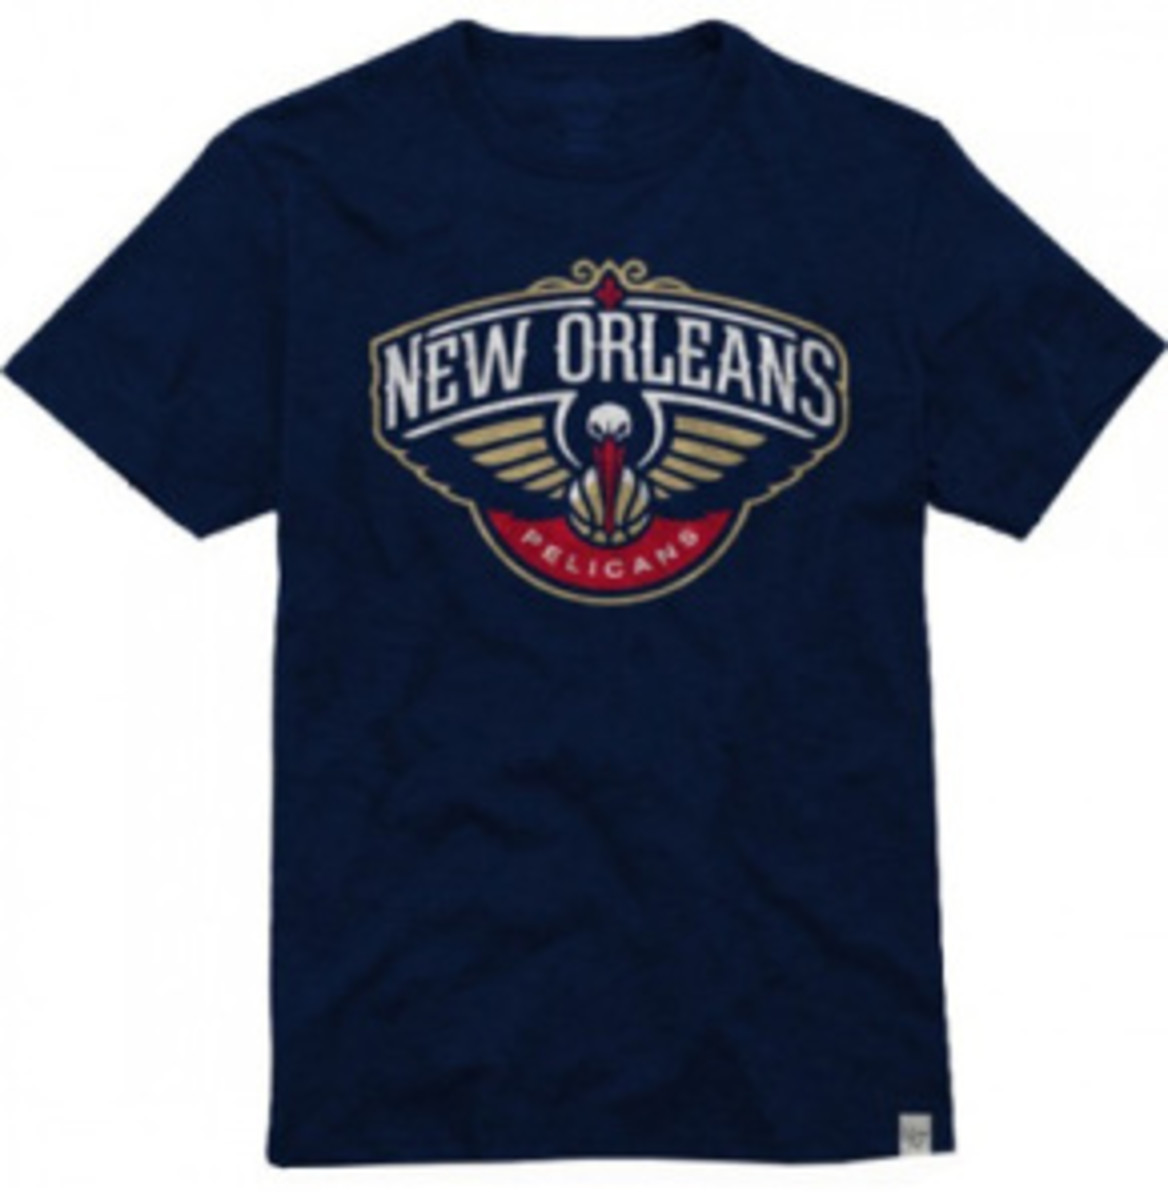 New Orleans Pelicans Announce Name Change From Hornets